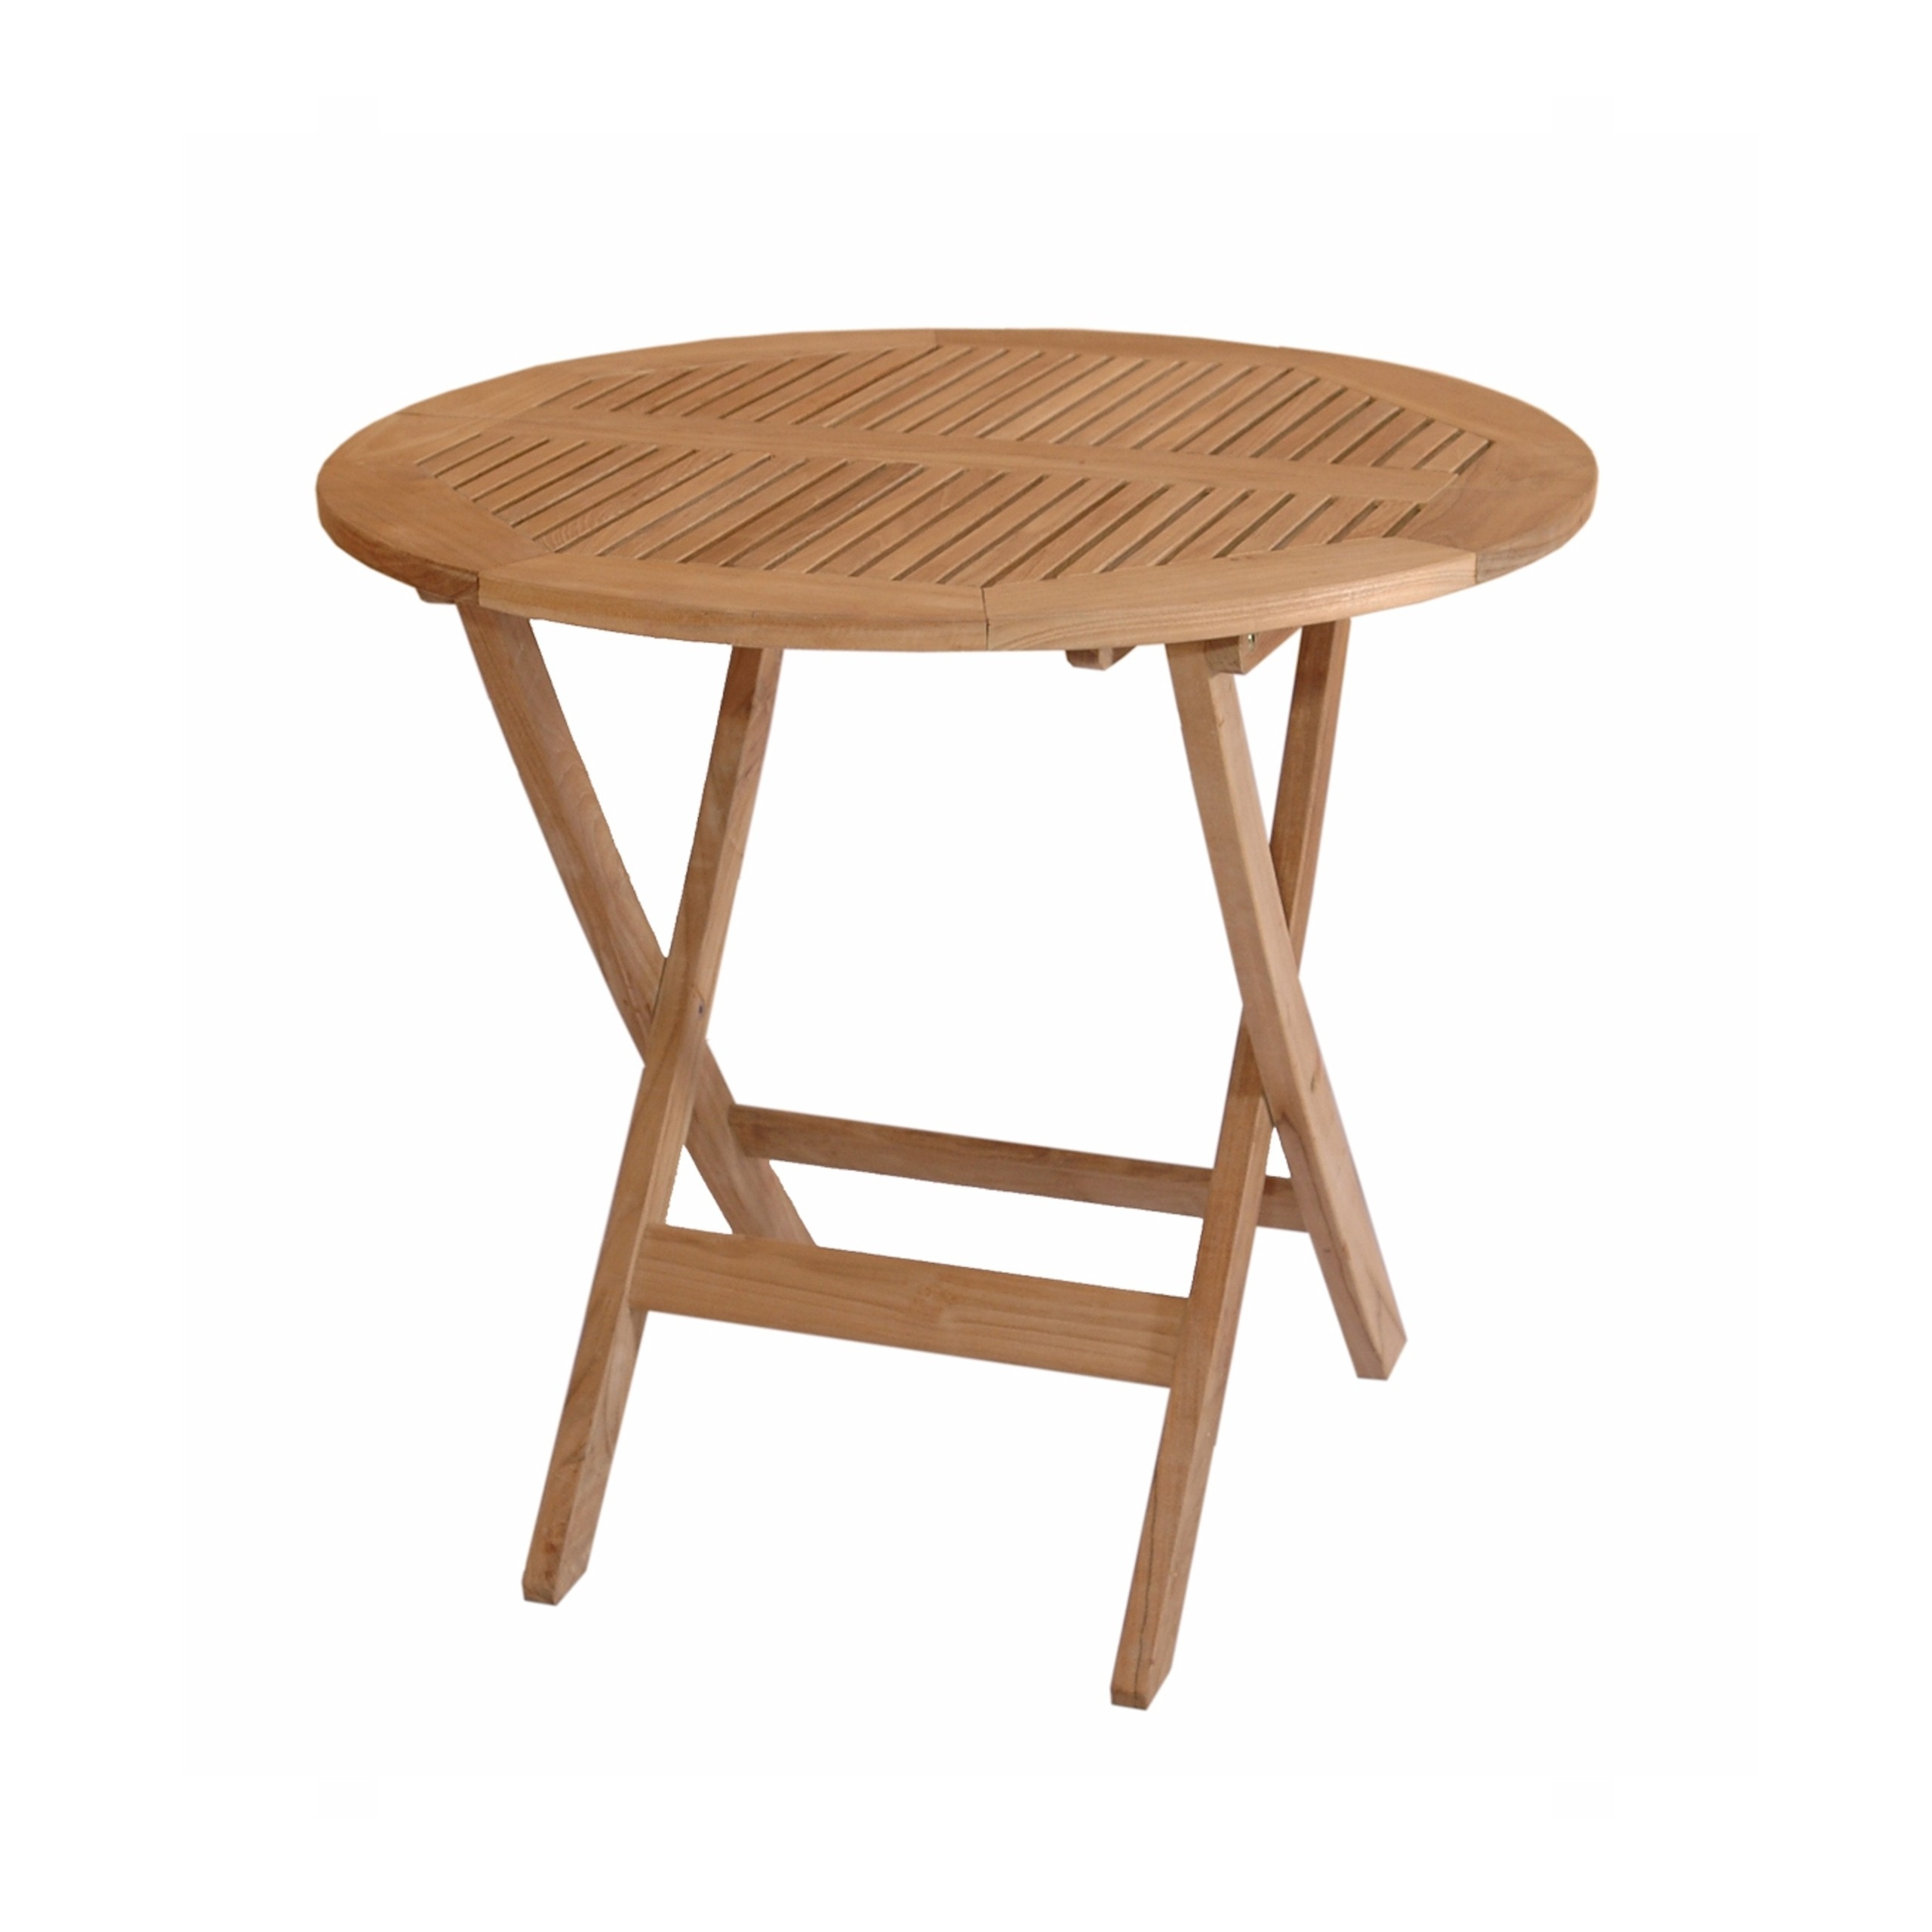 Teak Folding Tables Ideas On Foter